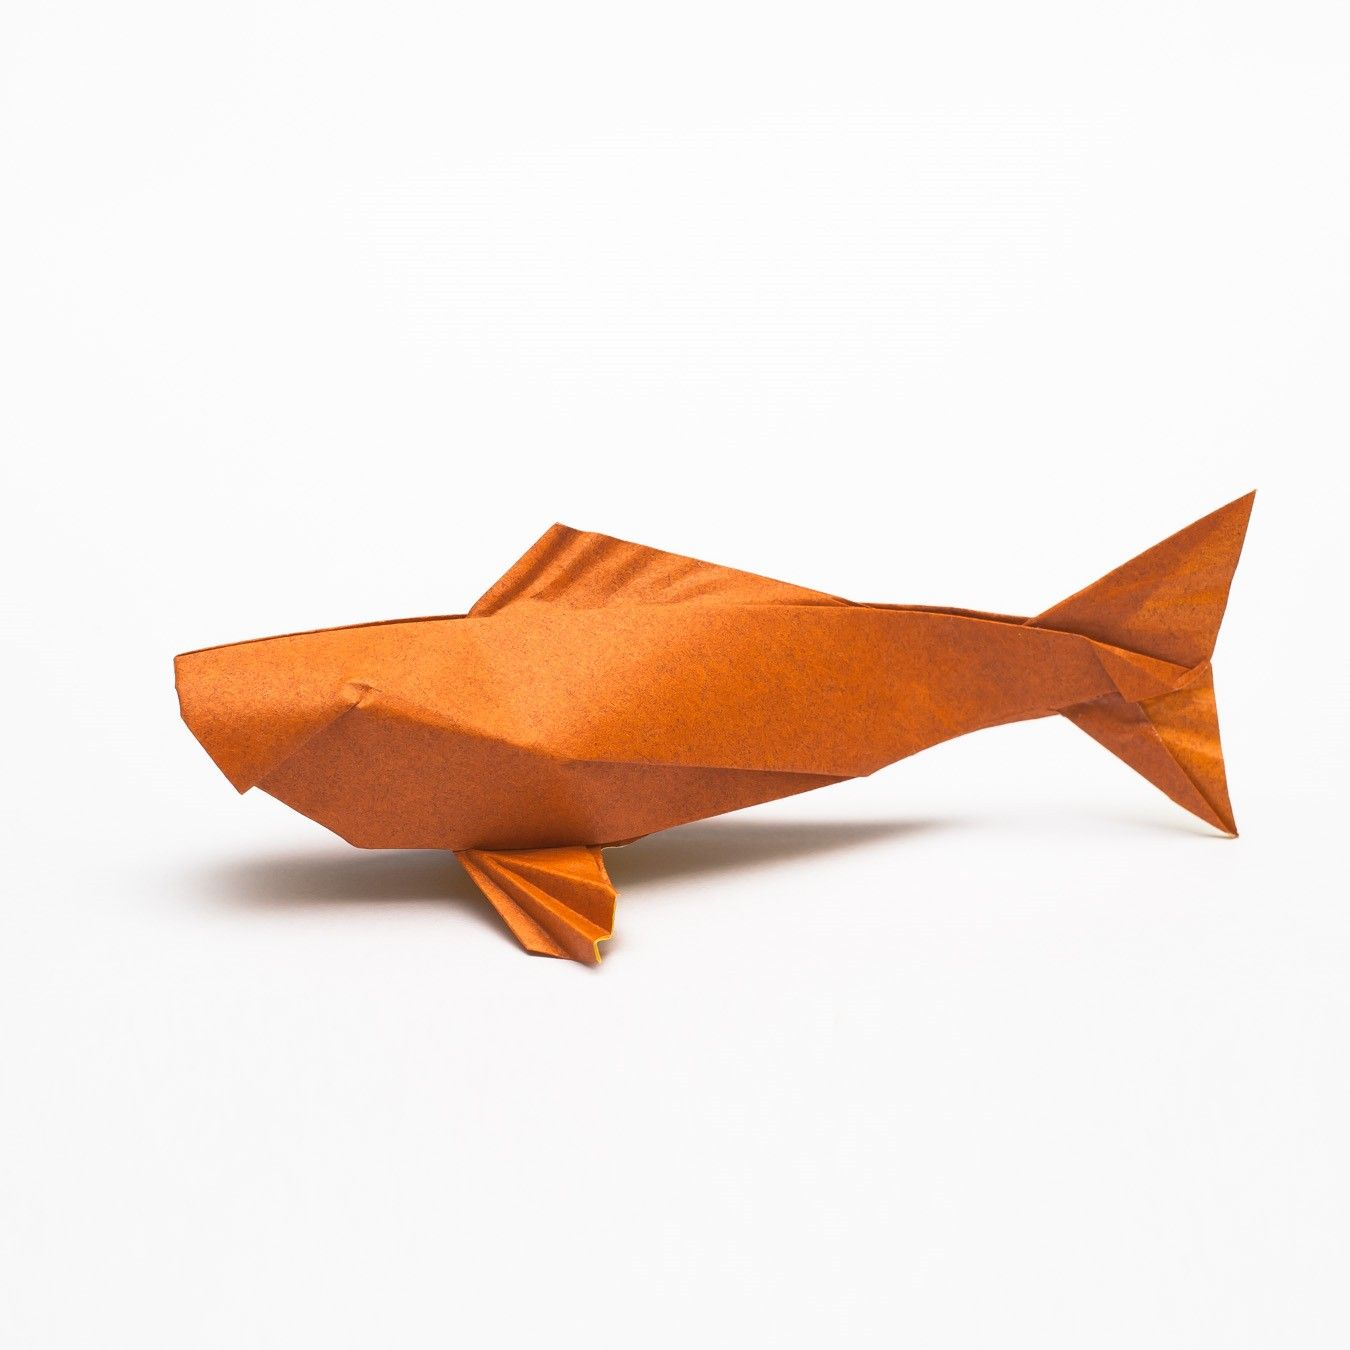 Illustration origami carp origami koi fish figure 2 art how to pinterest carp for Origami koi fish